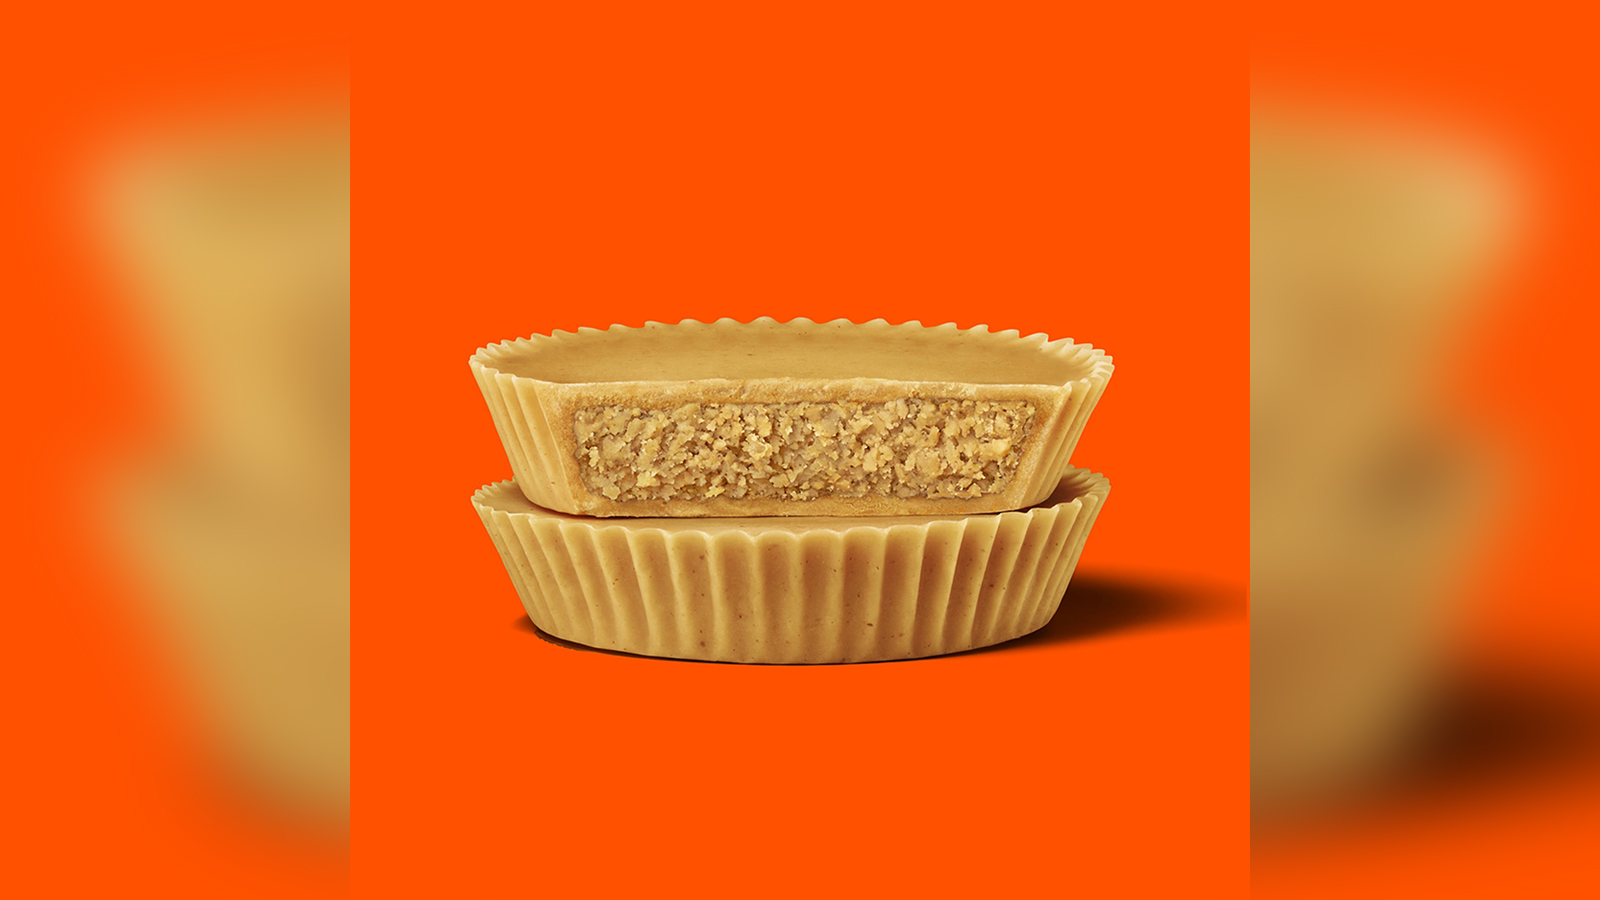 Reese's is launching a peanut butter cup without any chocolate